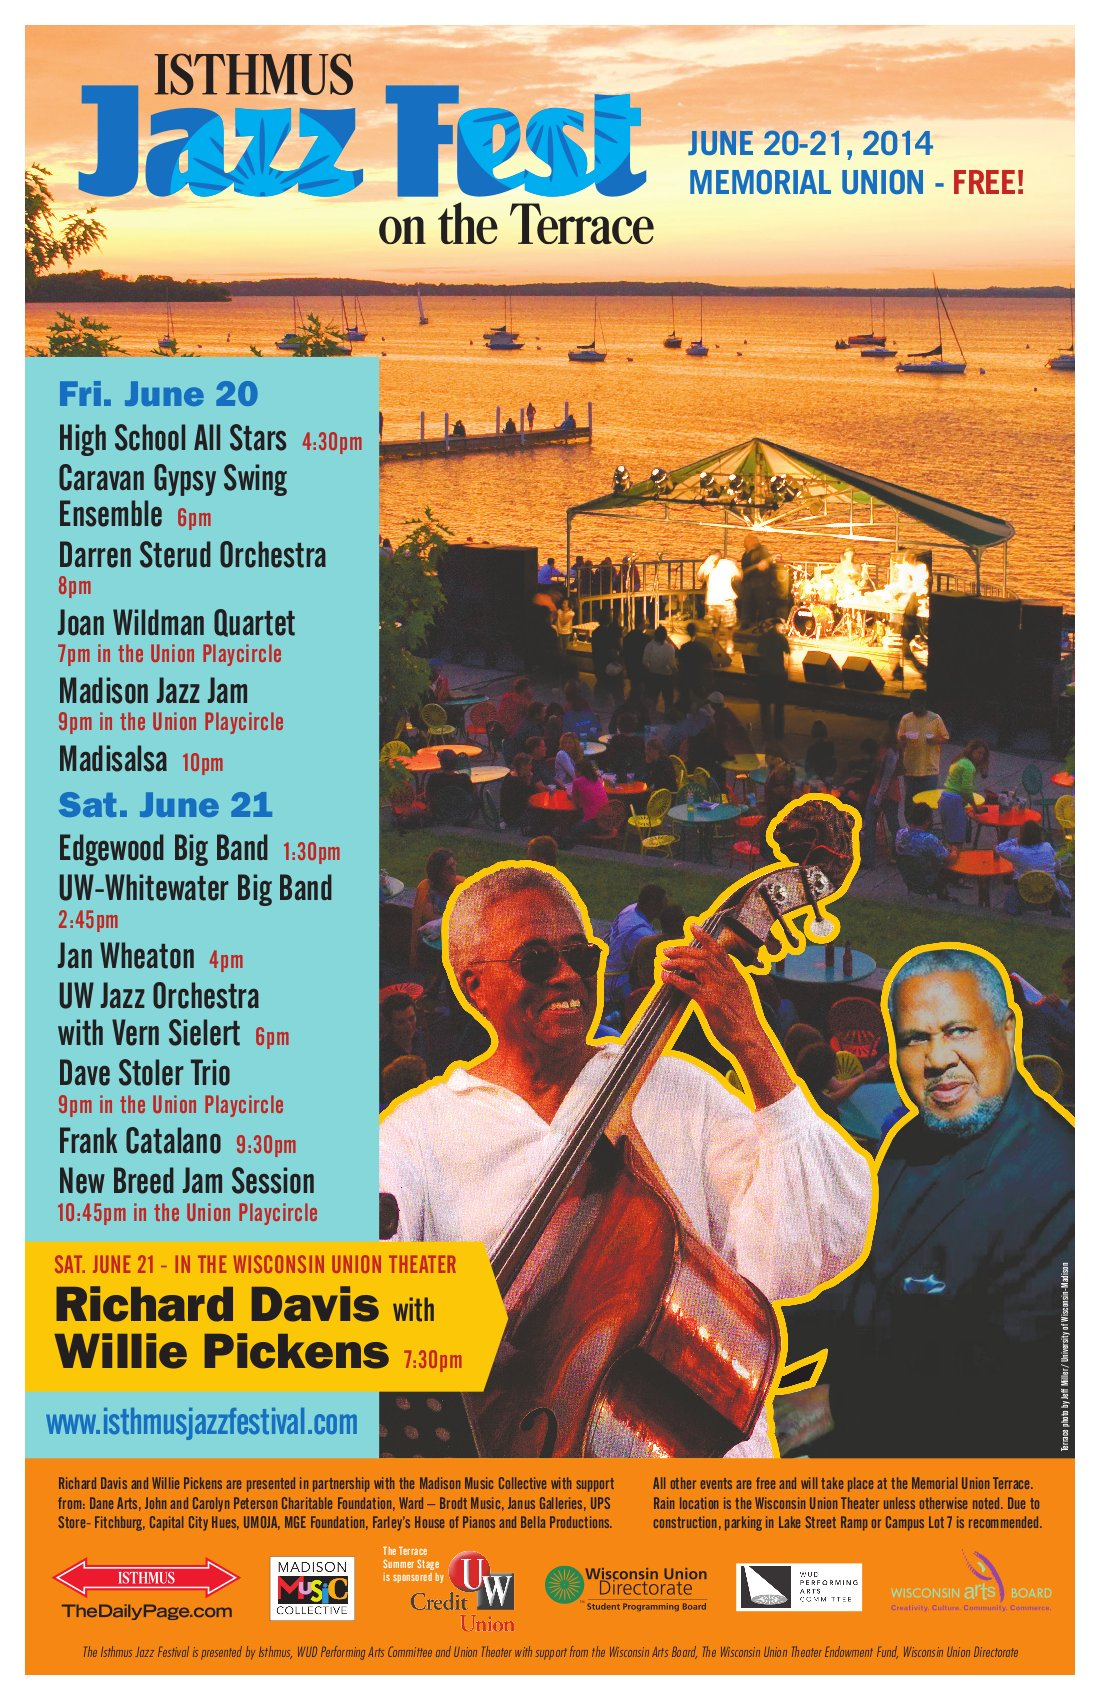 Isthmus Jazz Festival Poster